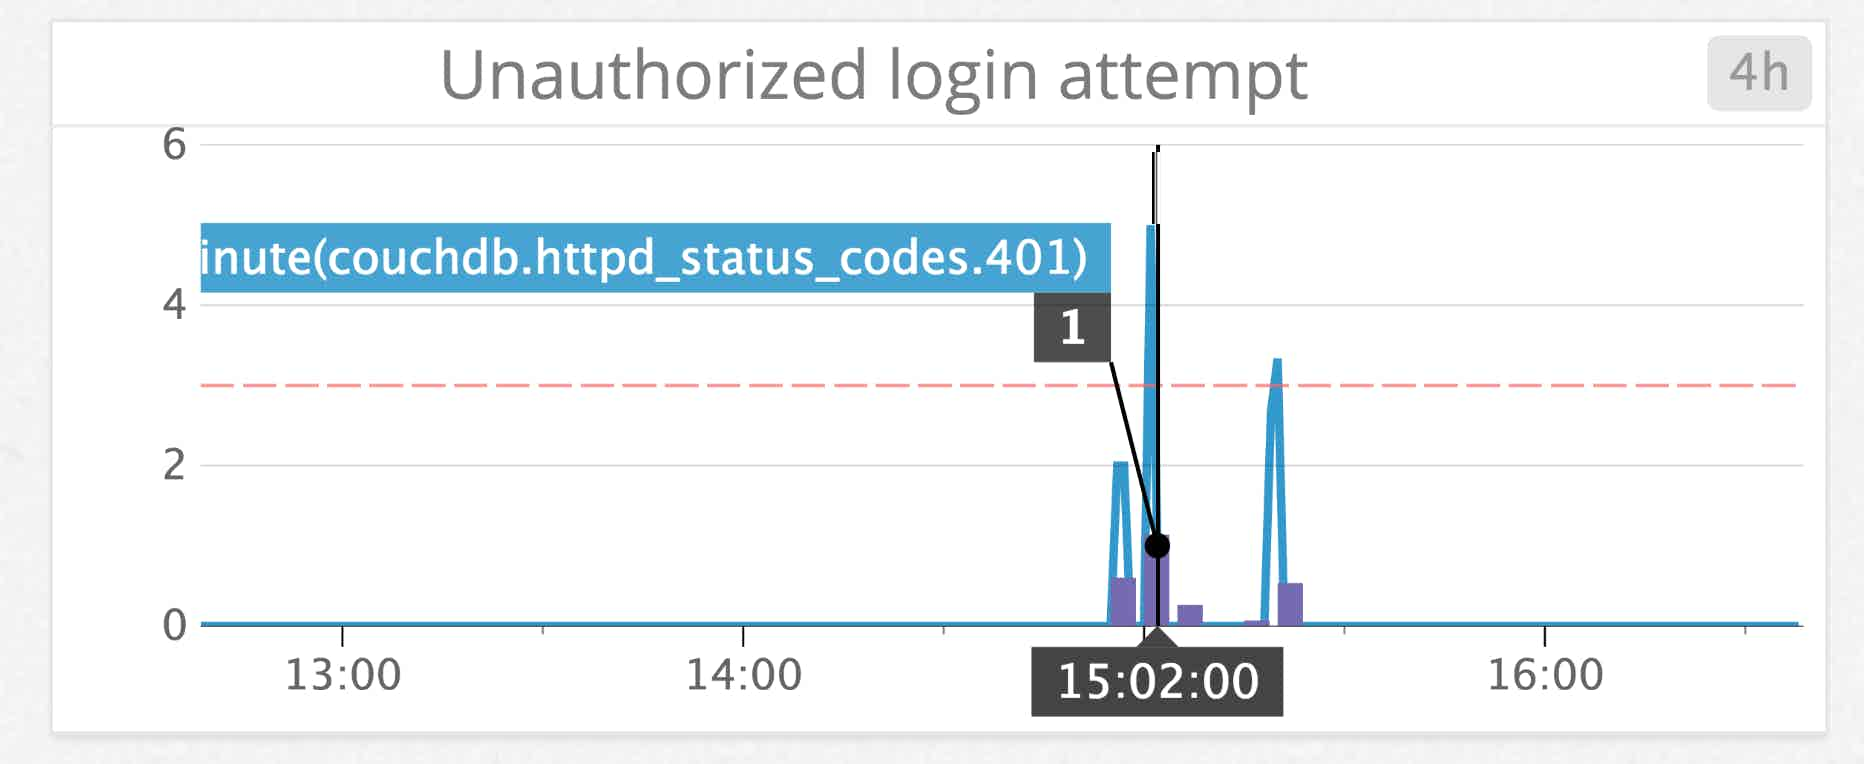 CouchDB monitoring authentication cache with unauthorized request